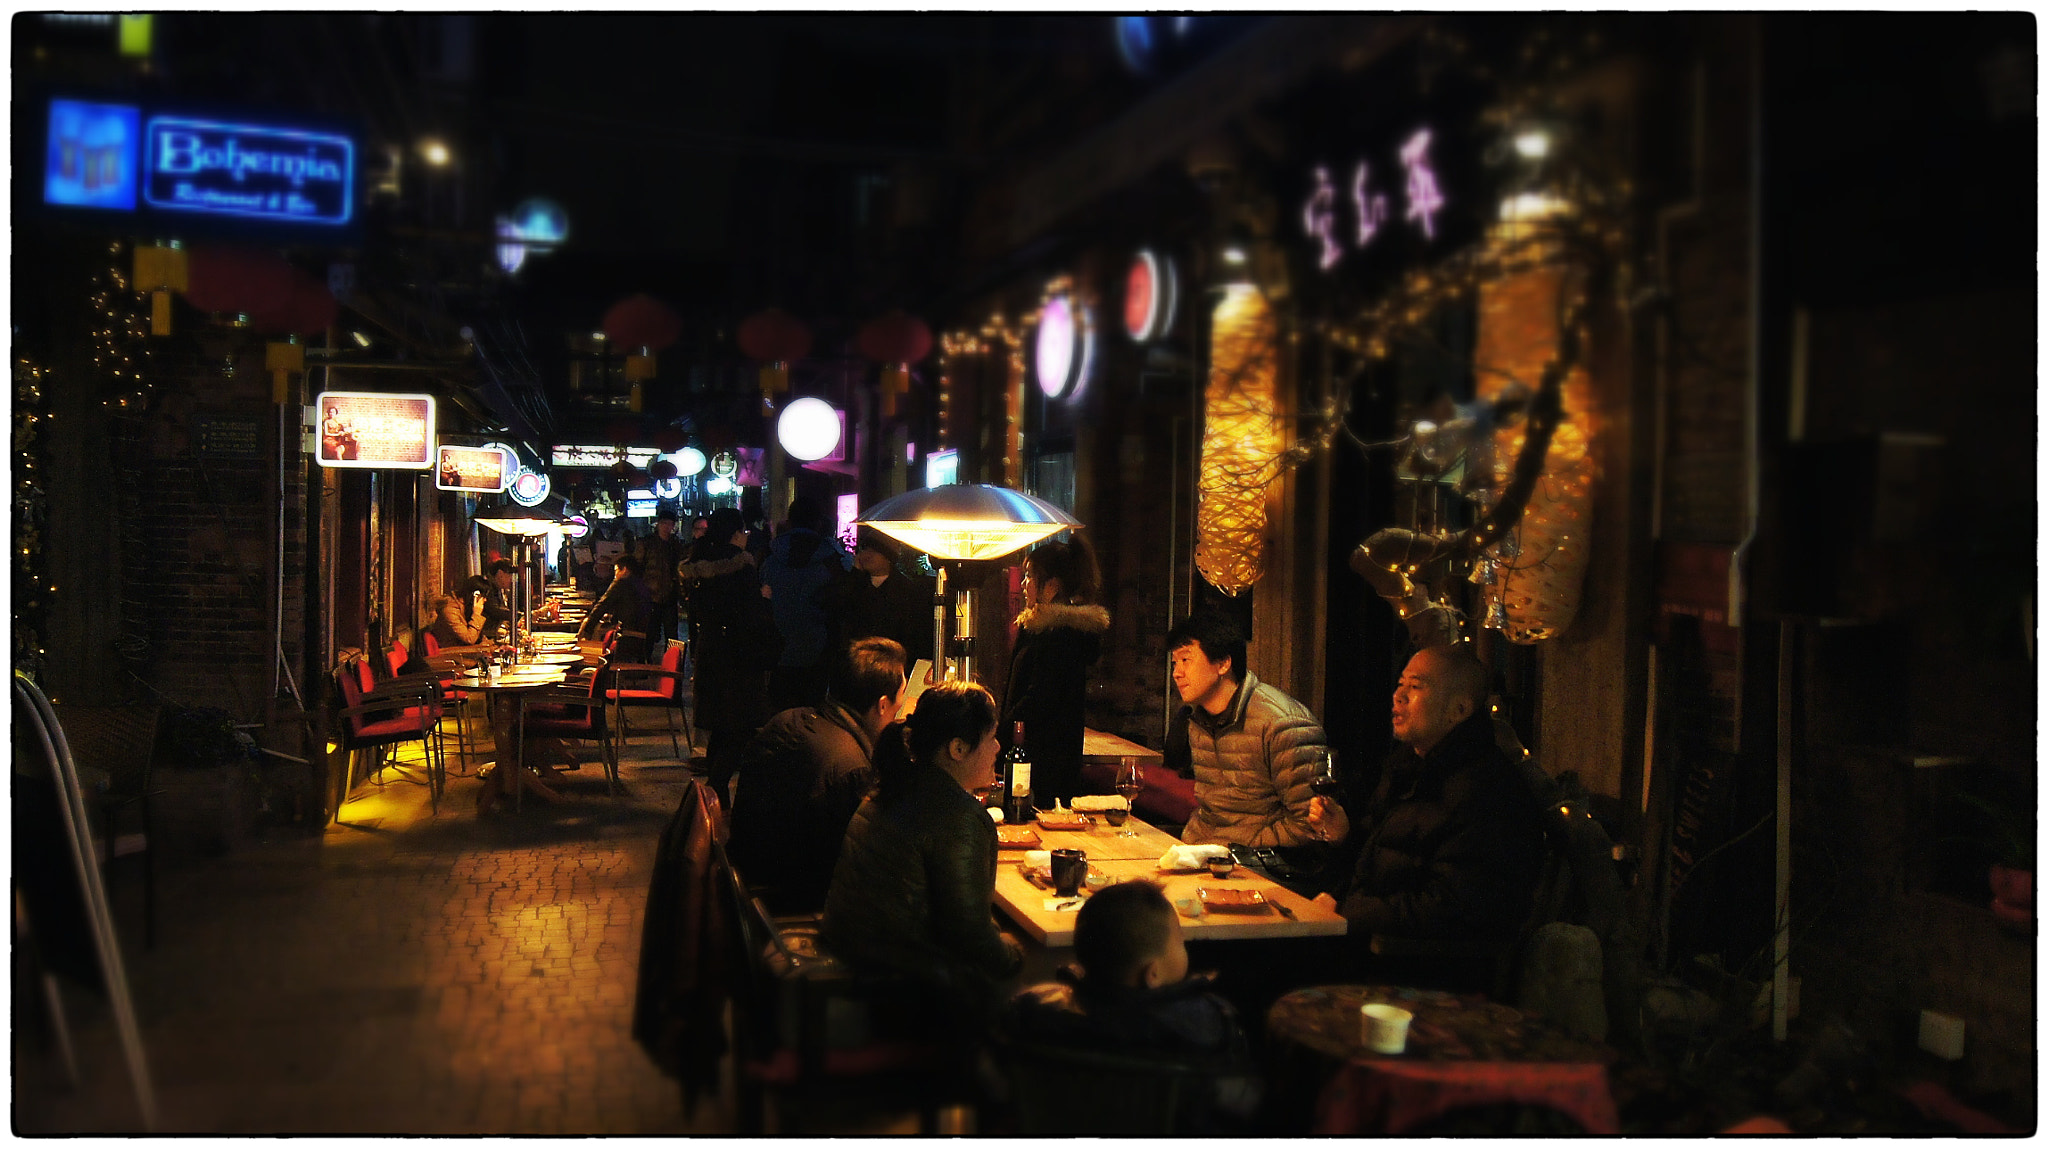 Photograph Dining at Tianzifang  by ShangHai Mr. X on 500px